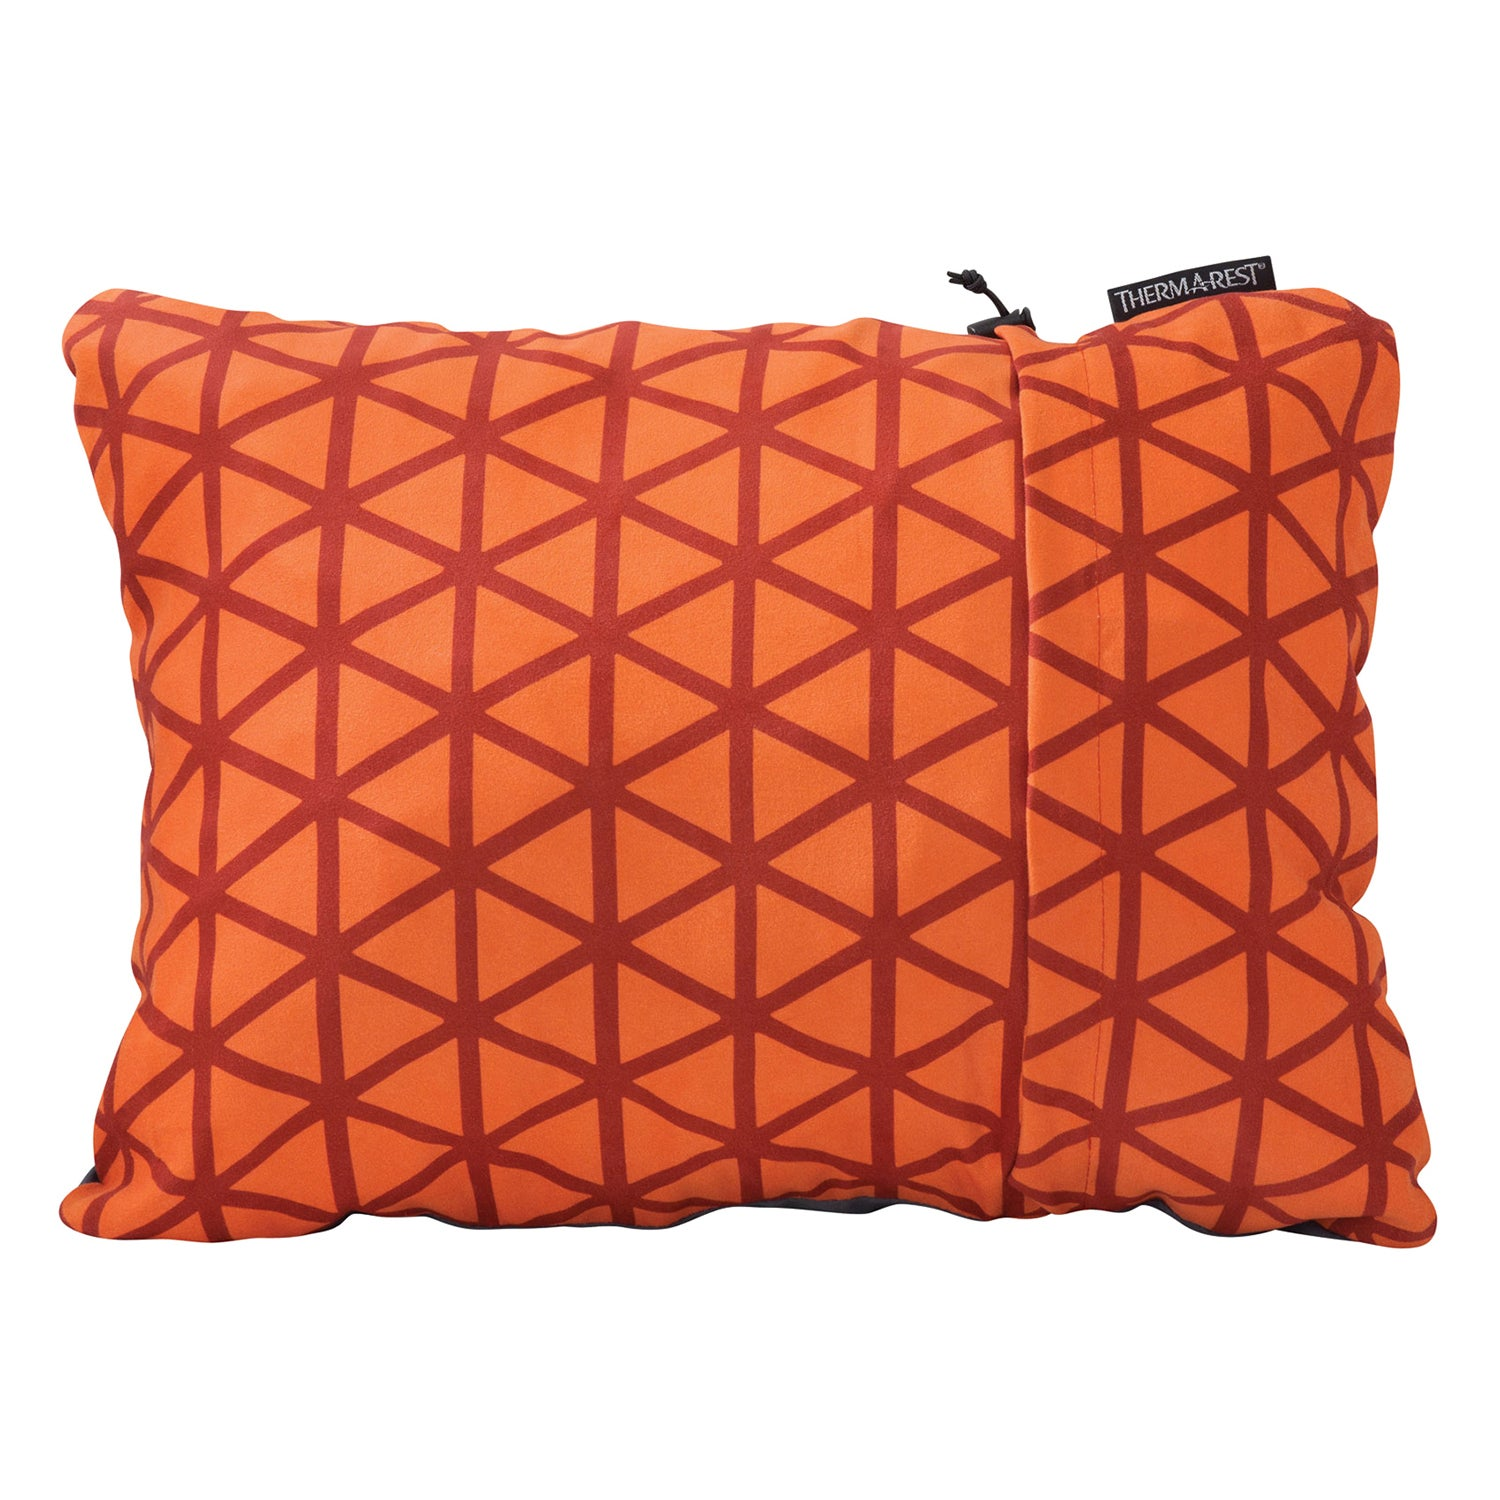 Thermarest Compressible Travel Pillow